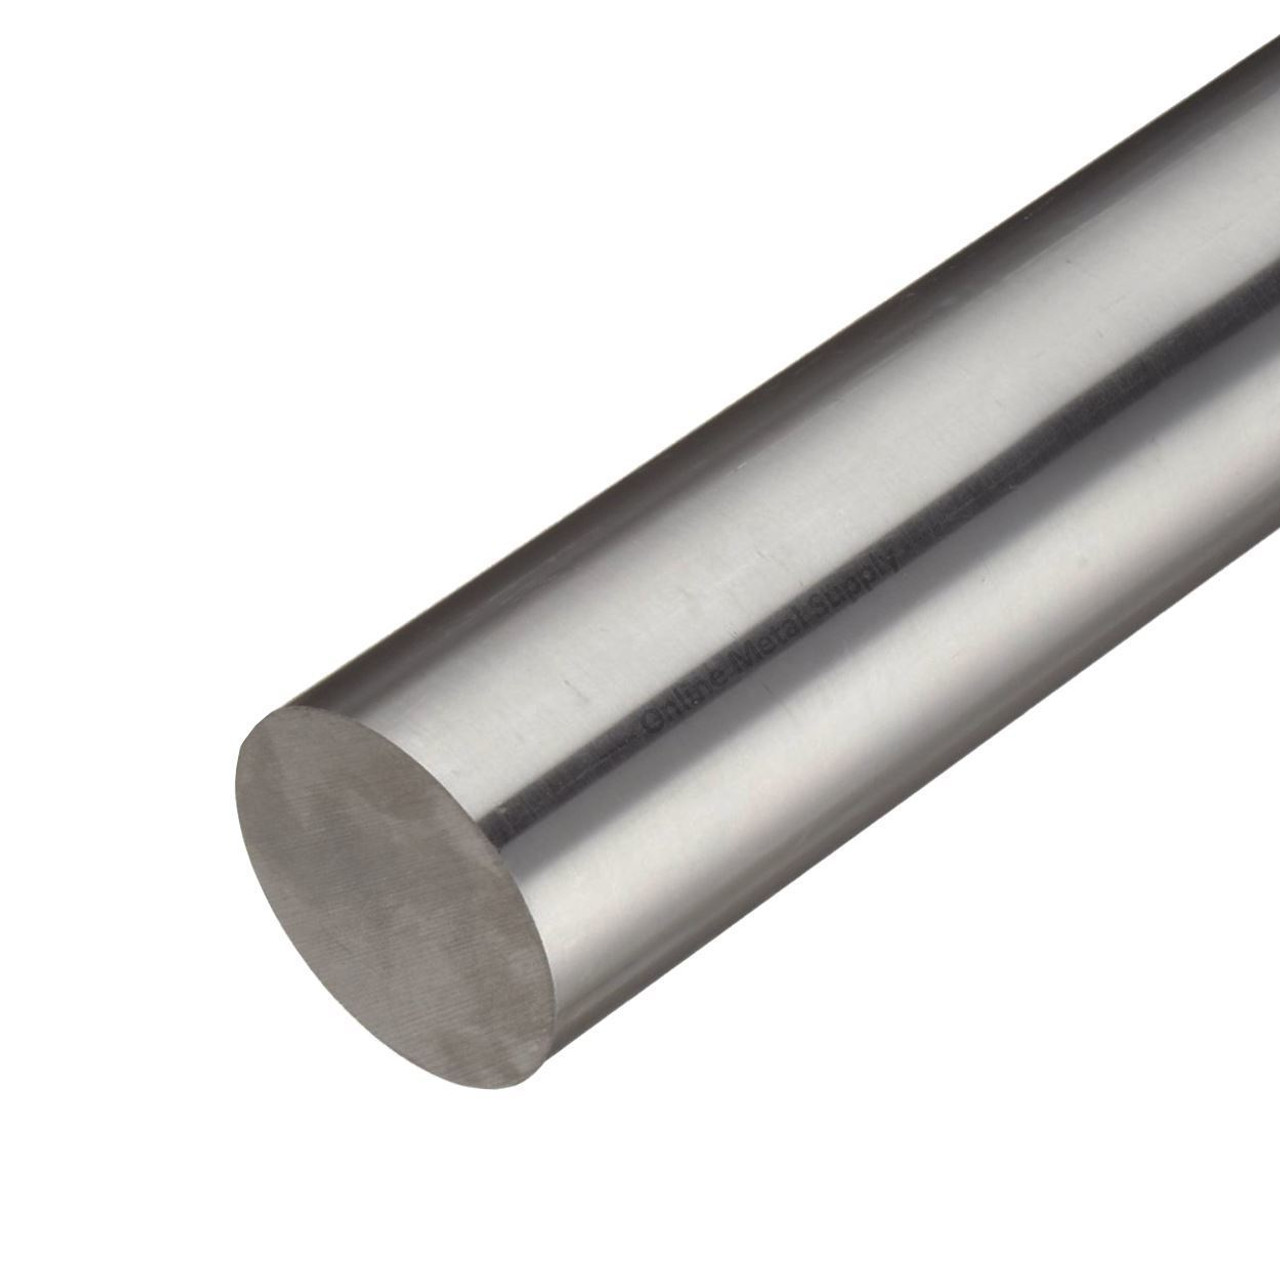 17-4 Stainless Steel Round Rod, 1.125 (1-1/8 inch) x 12 inches